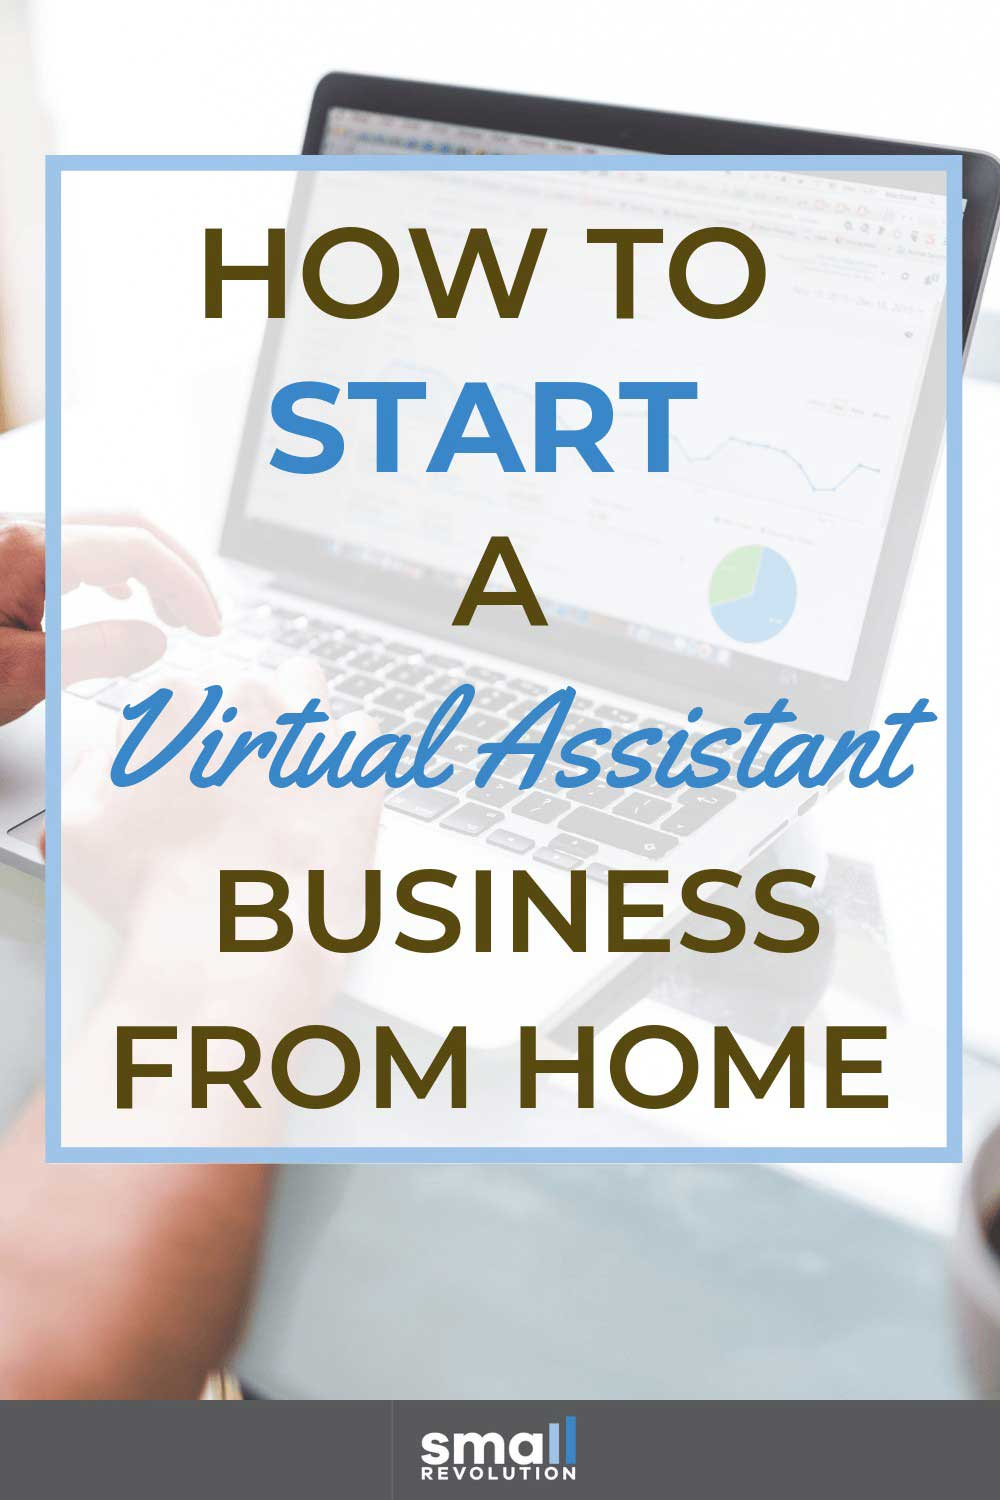 How to start a Virtual Assistant business from home